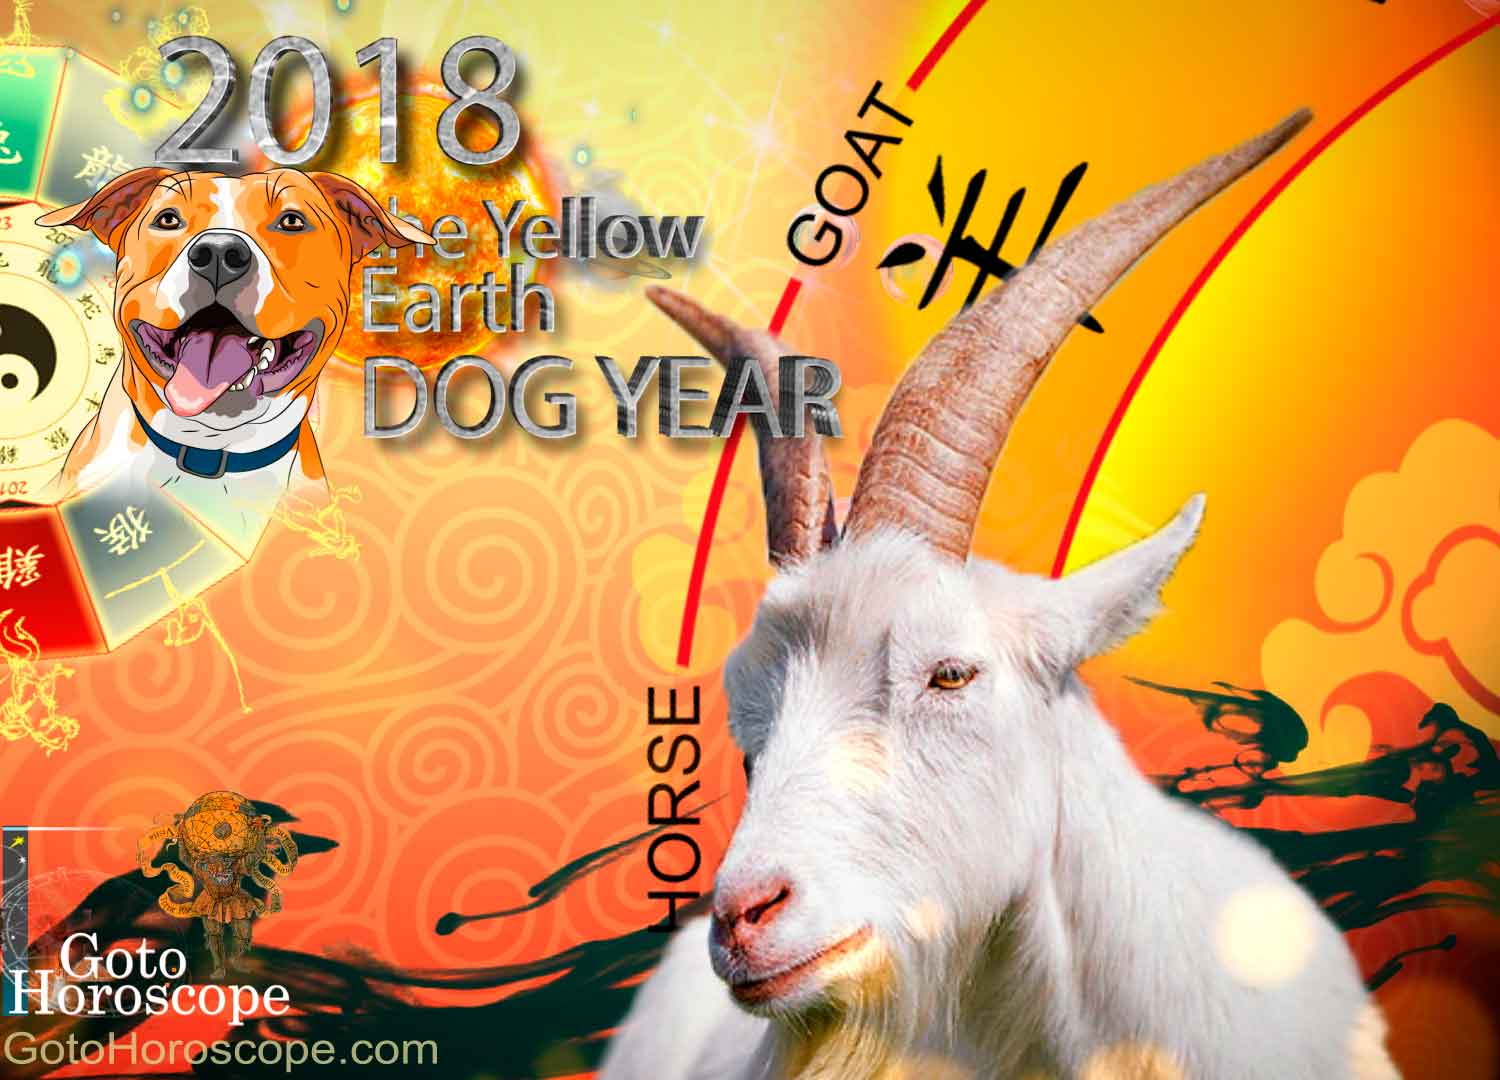 Sheep 2018 Horoscope for the Yellow Earth Dog Year